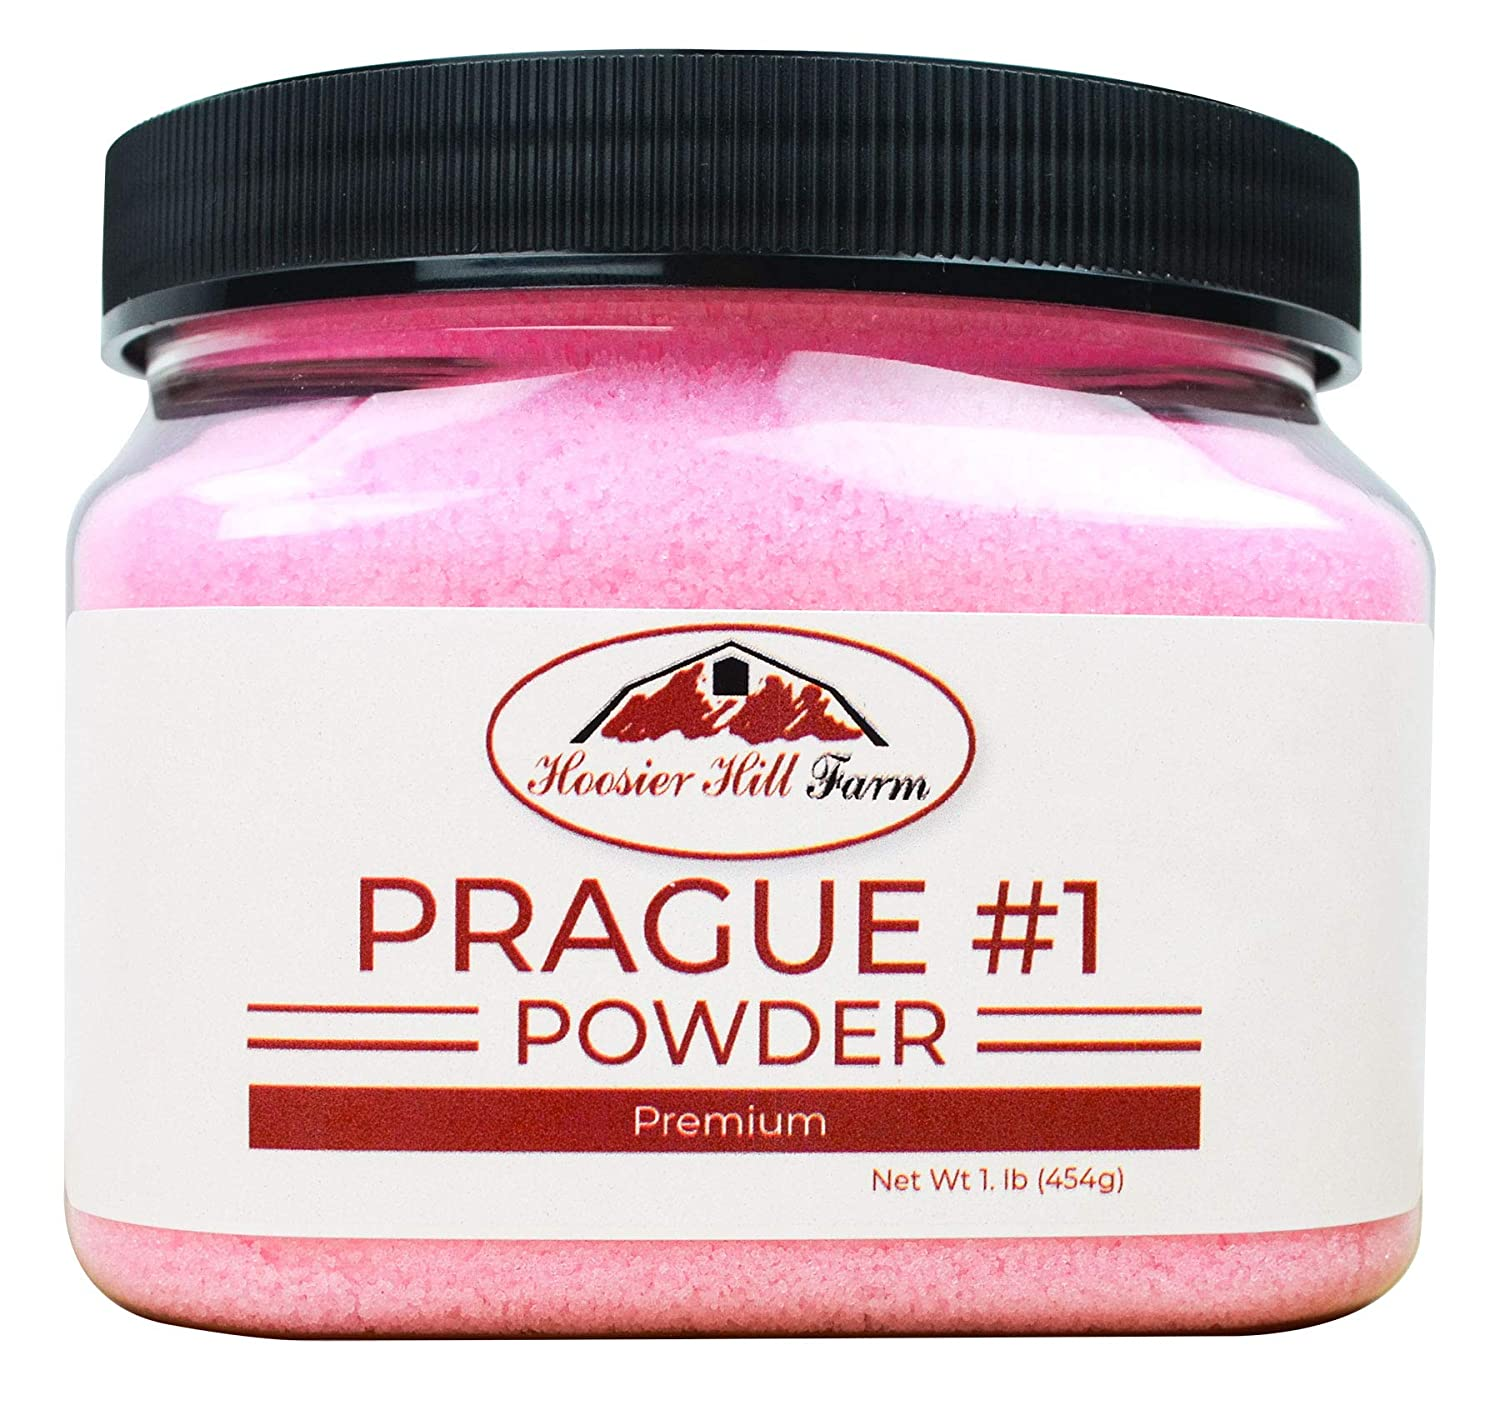 Hoosier Hill Farm Prague Powder Curing Salt, Pink, 1 Pound (Packaging may vary) : Coarse Salts : Grocery & Gourmet Food